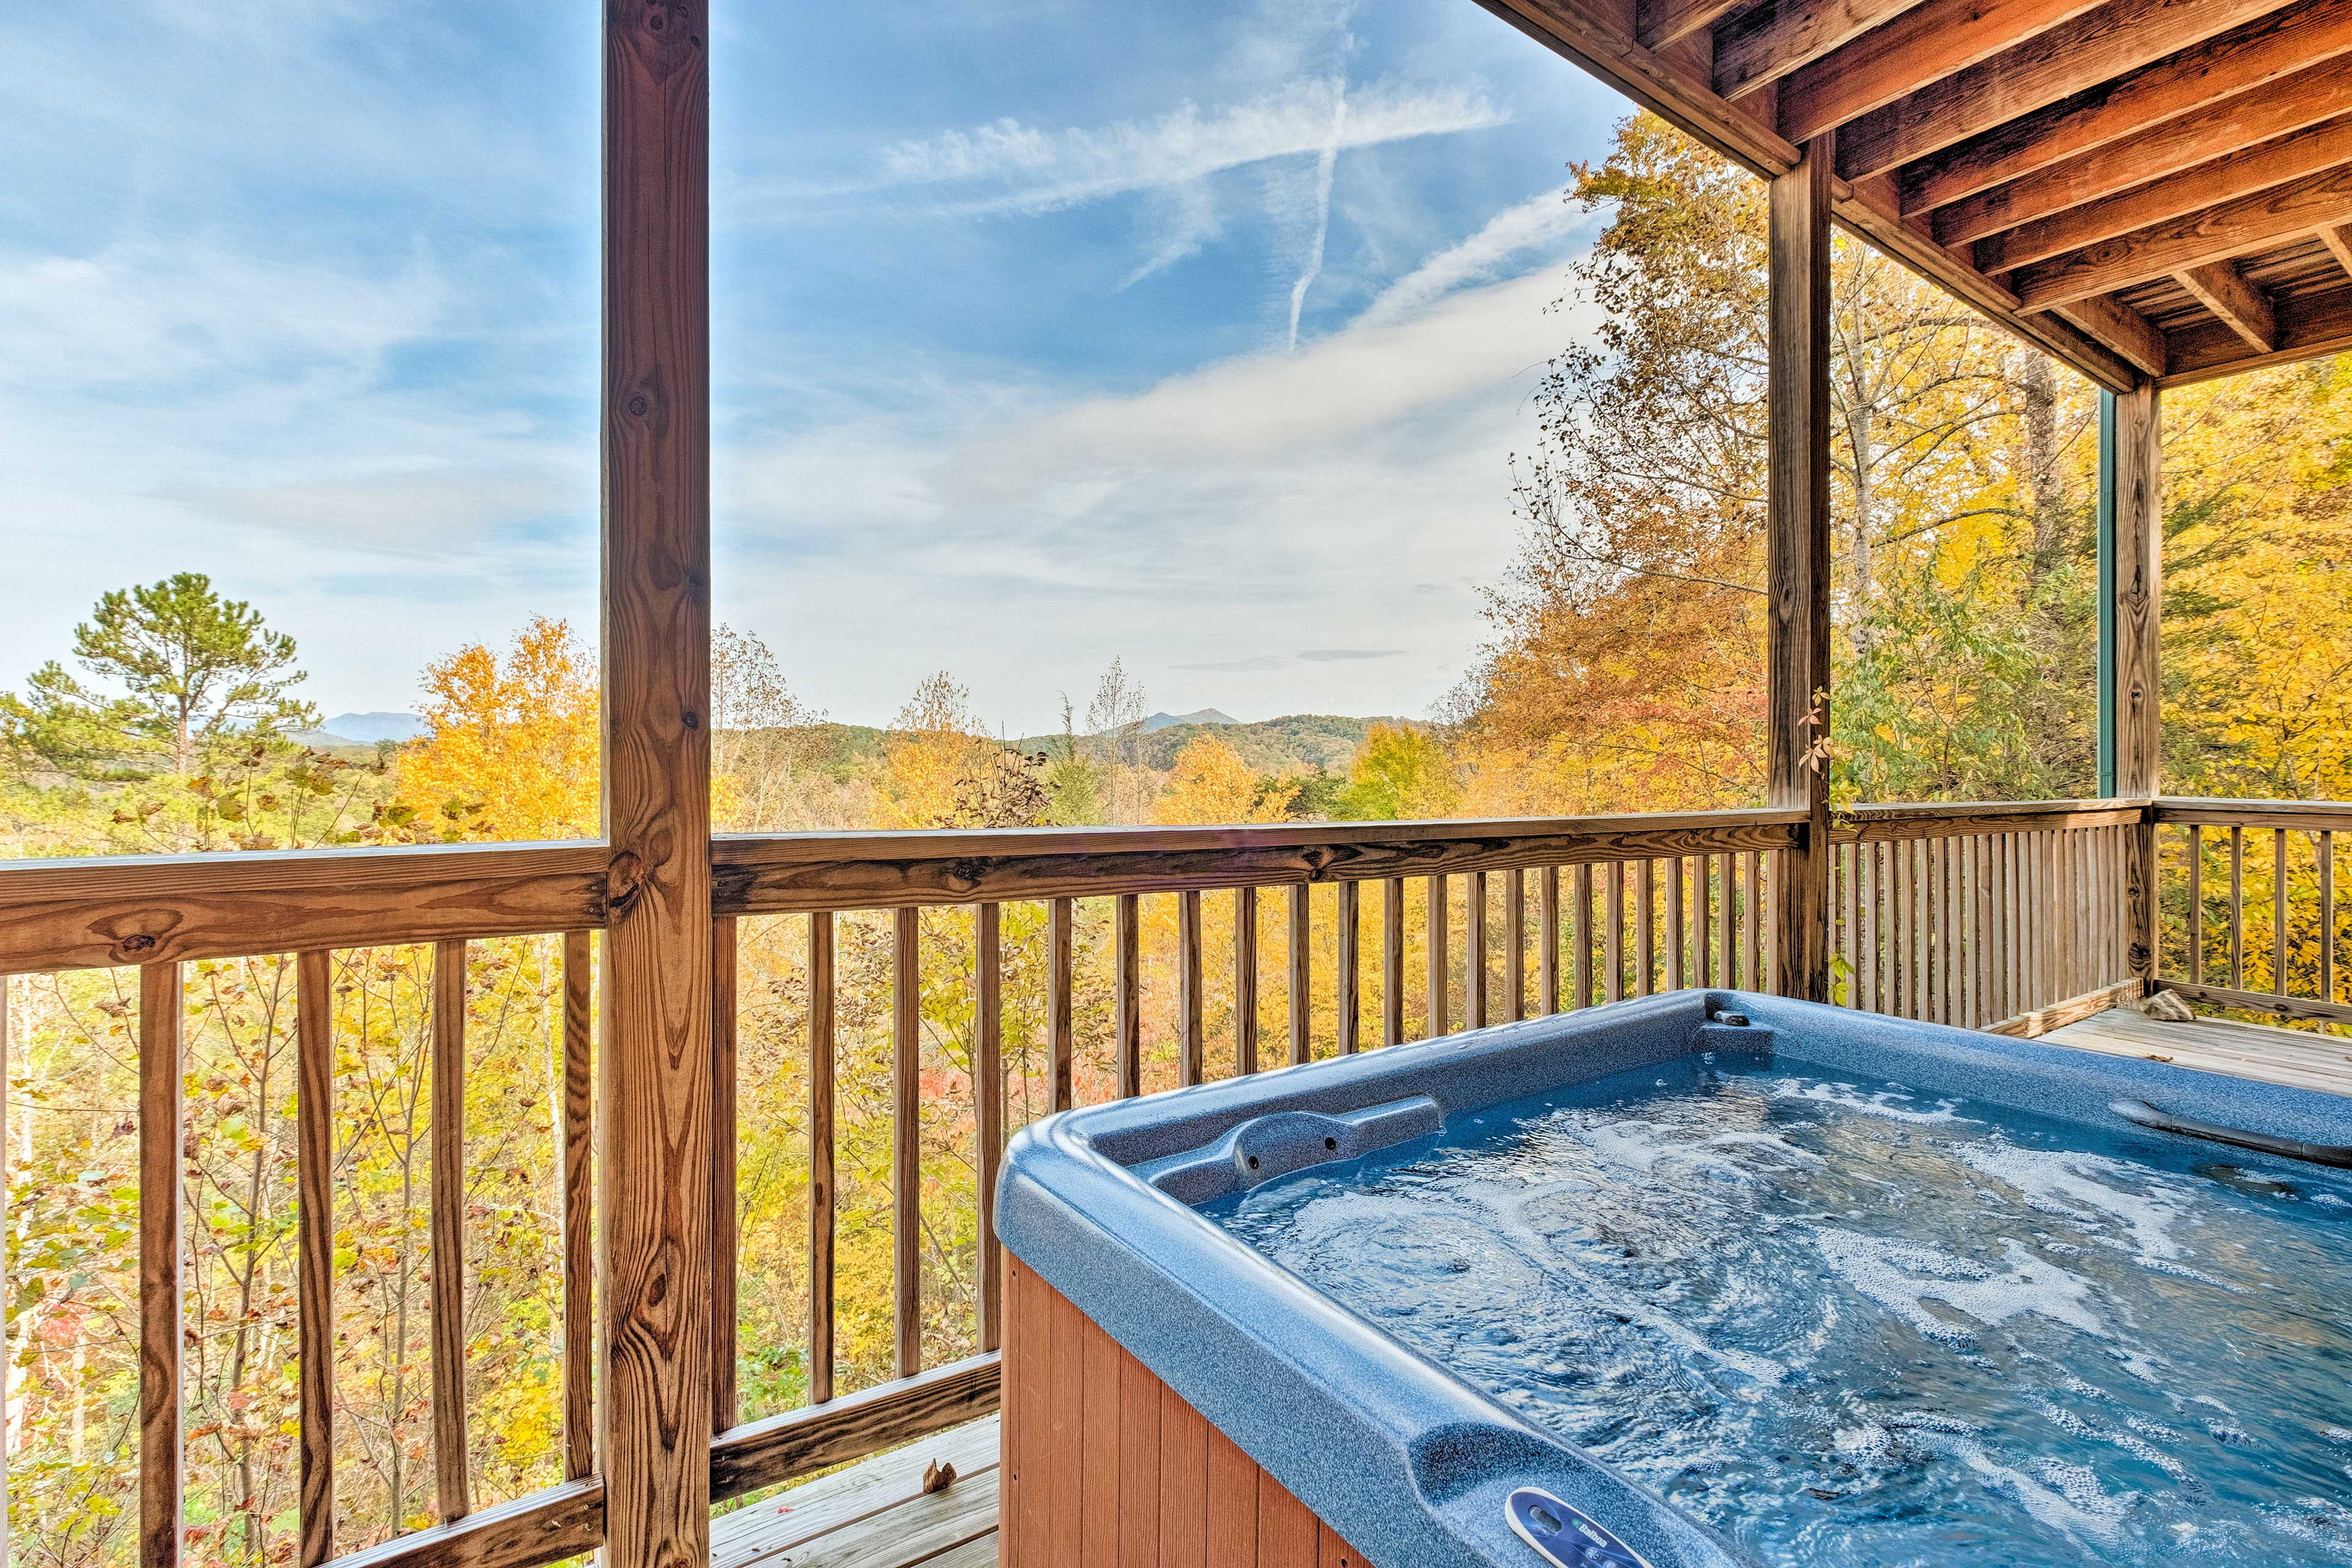 Admire Smoky Mountain views from the soothing hot tub.